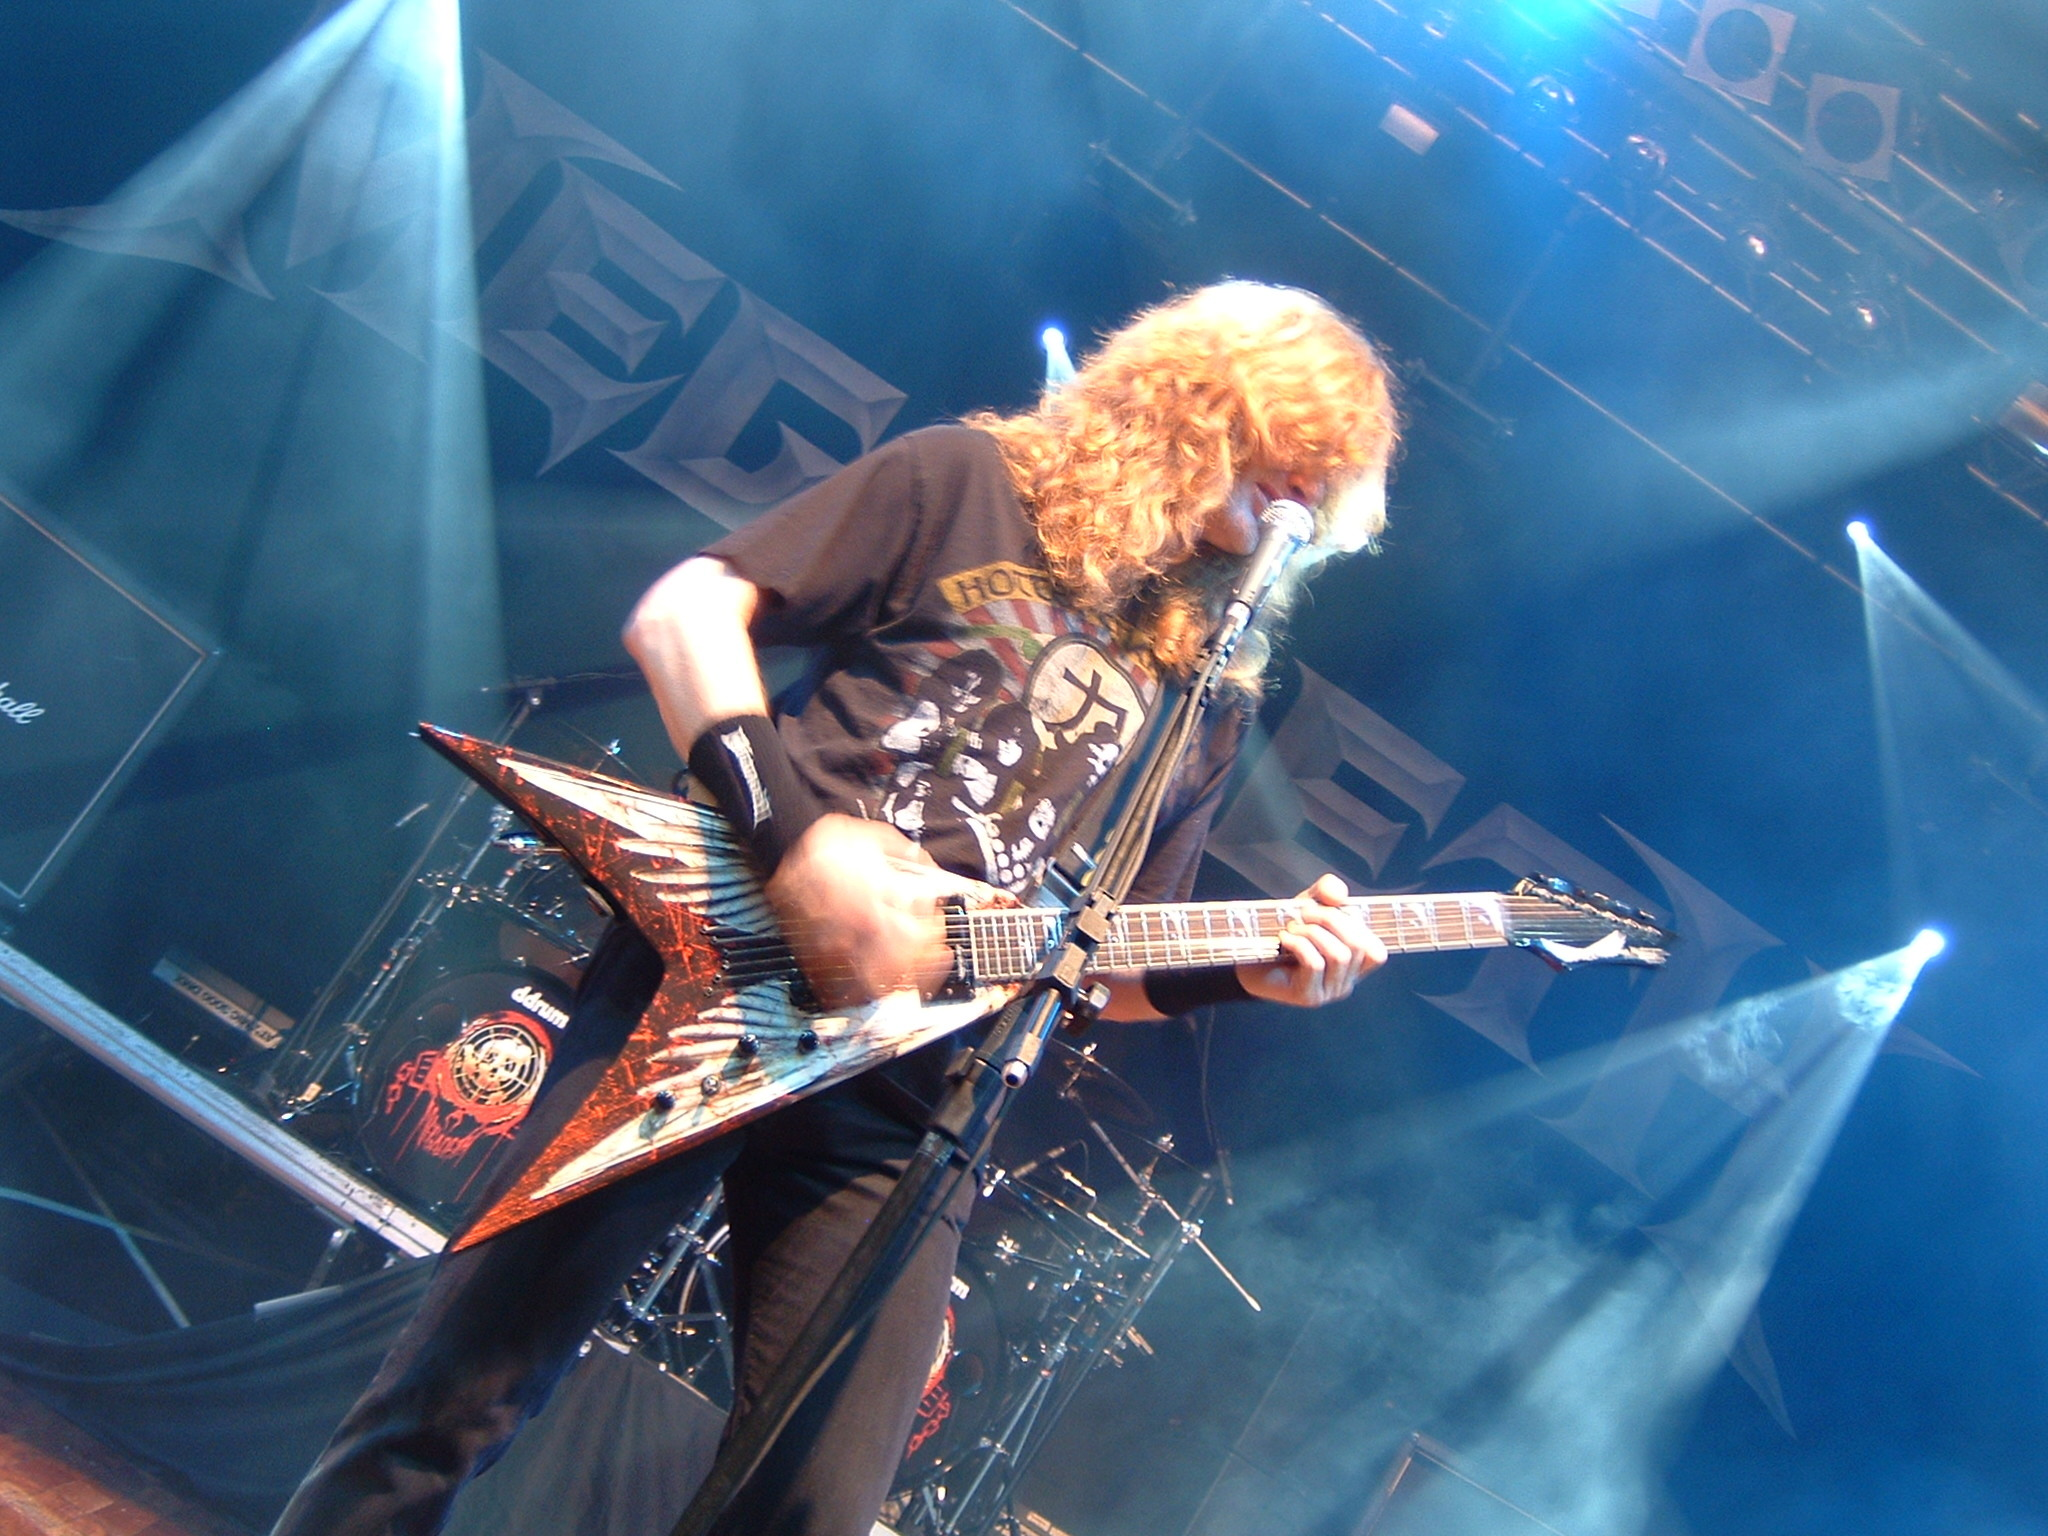 Res: 2048x1536, Megadeth bands groups heavy metal thrash hard rock Dave Mustaine concerts  guitars wallpaper |  | 25115 | WallpaperUP